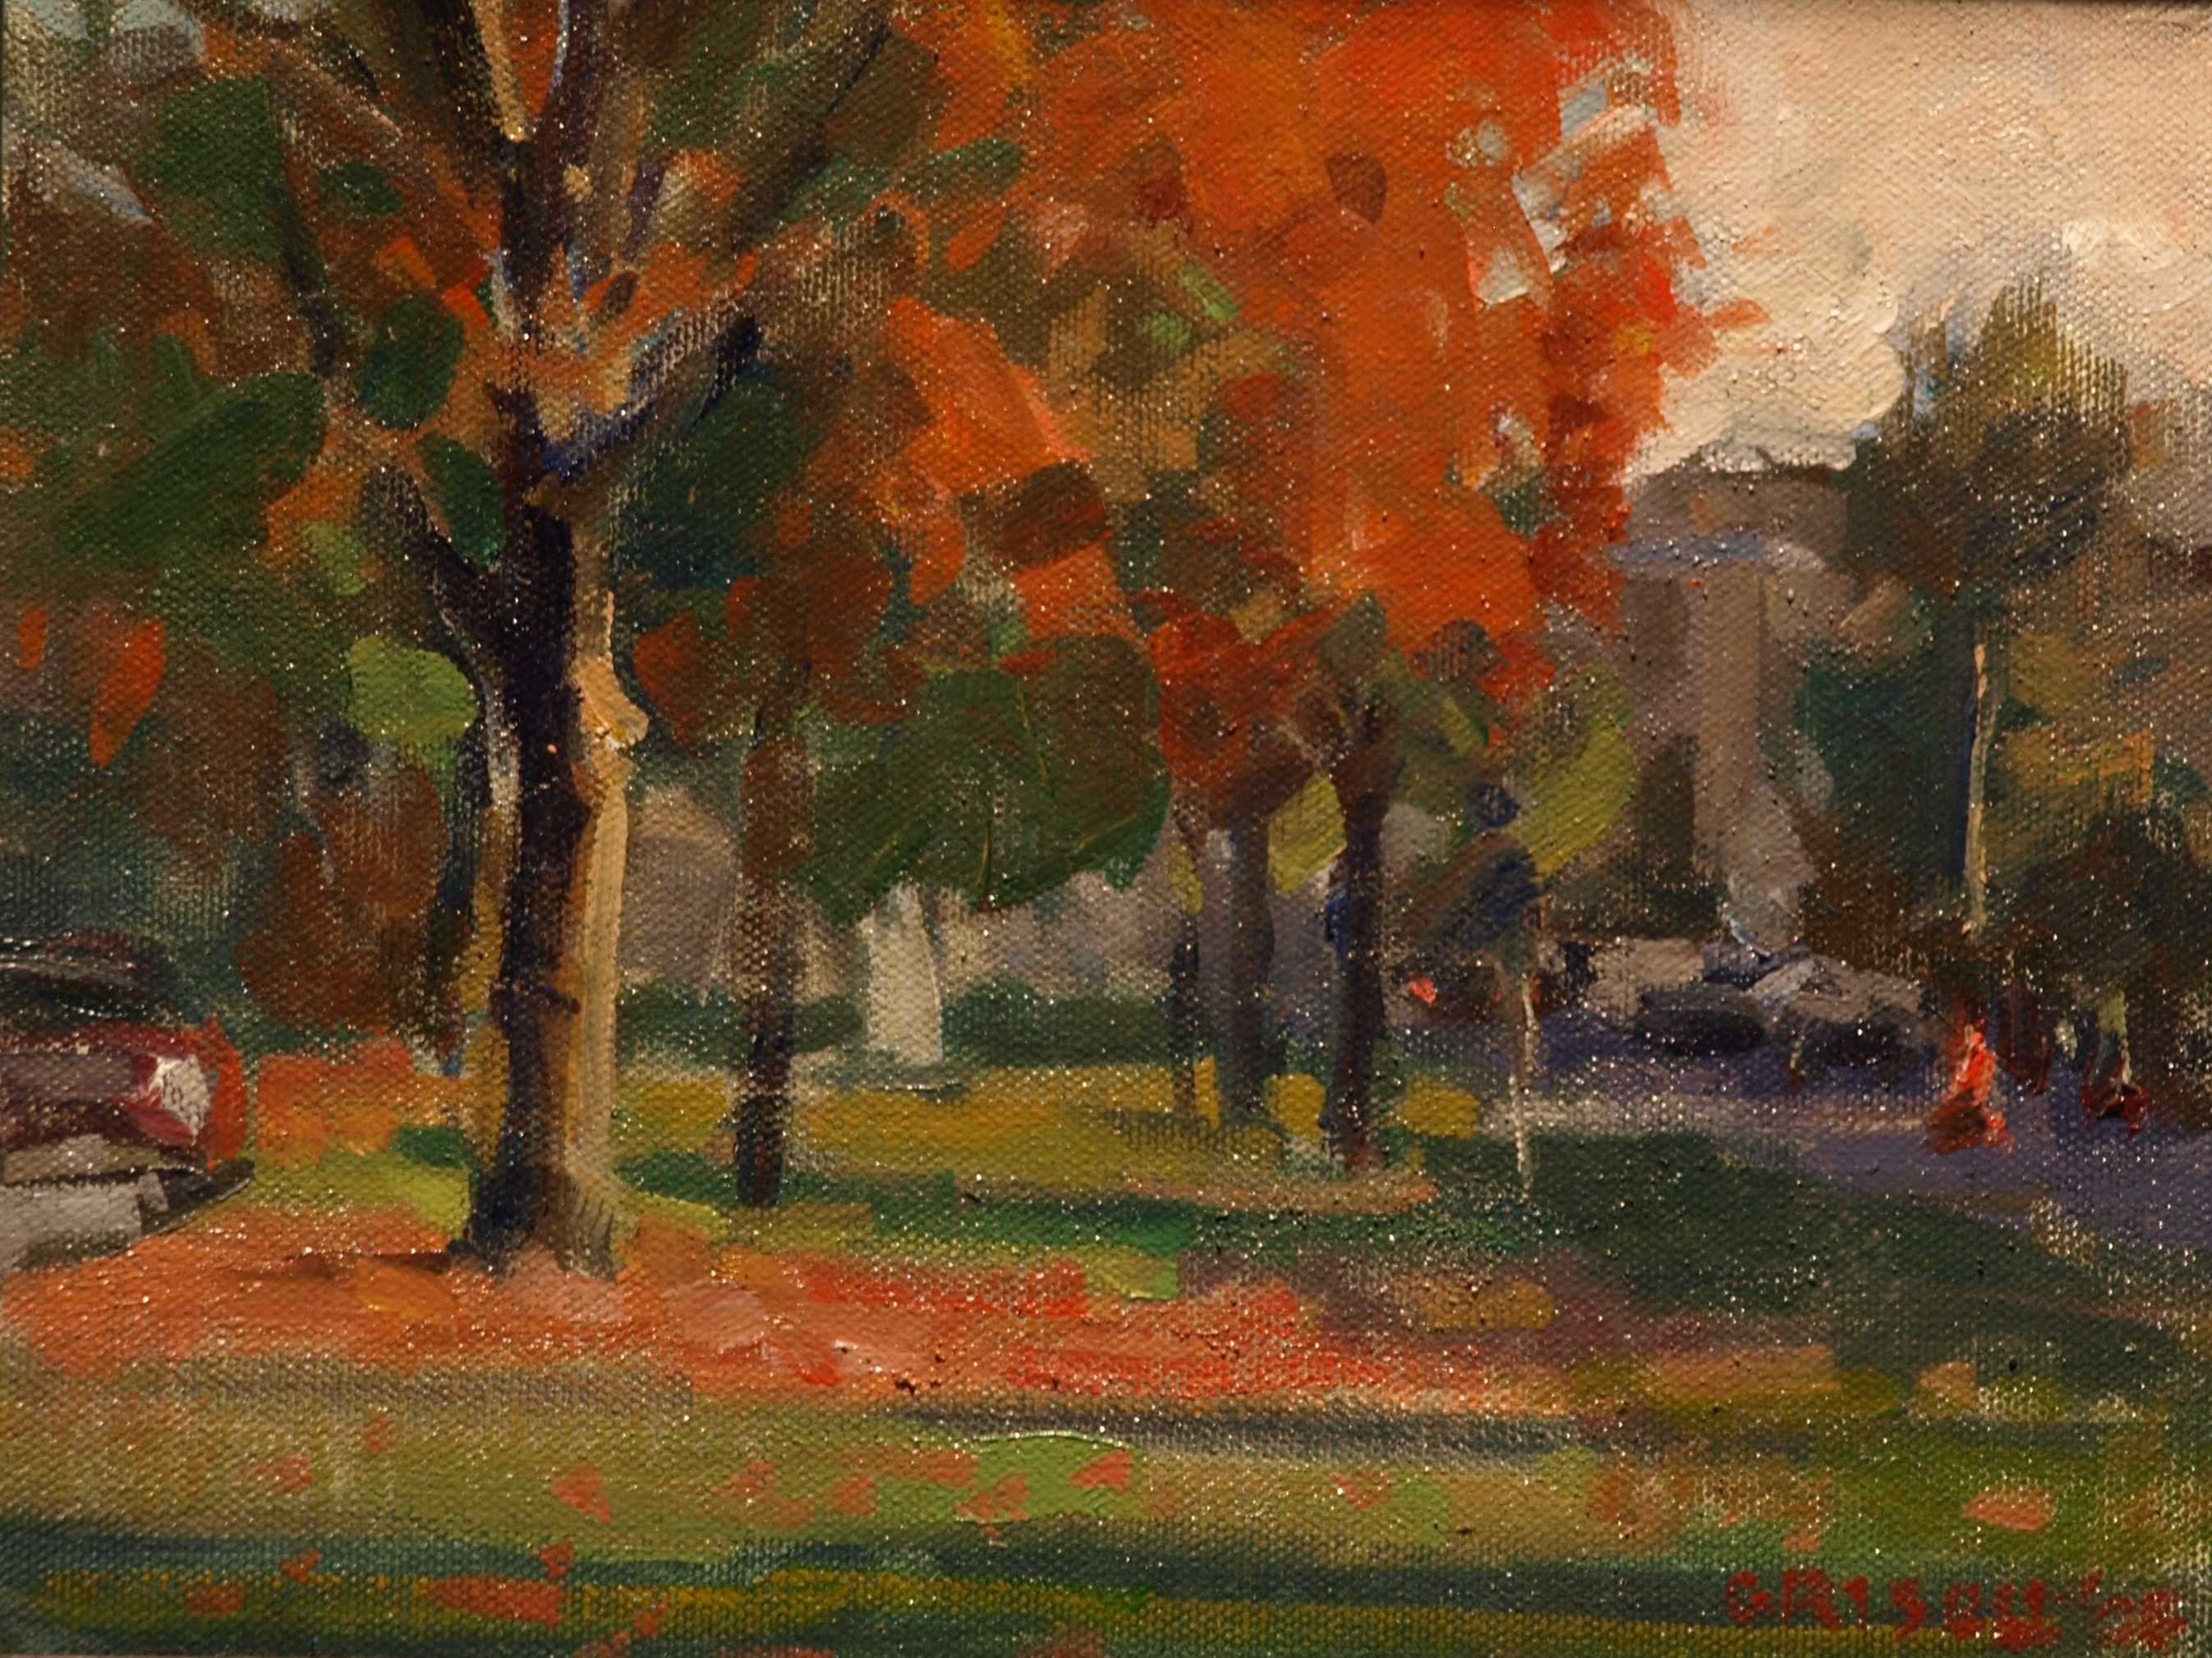 New Milford Green, Oil on Canvas on Panel, 8 x 10 Inches, by Susan Grisell, $150